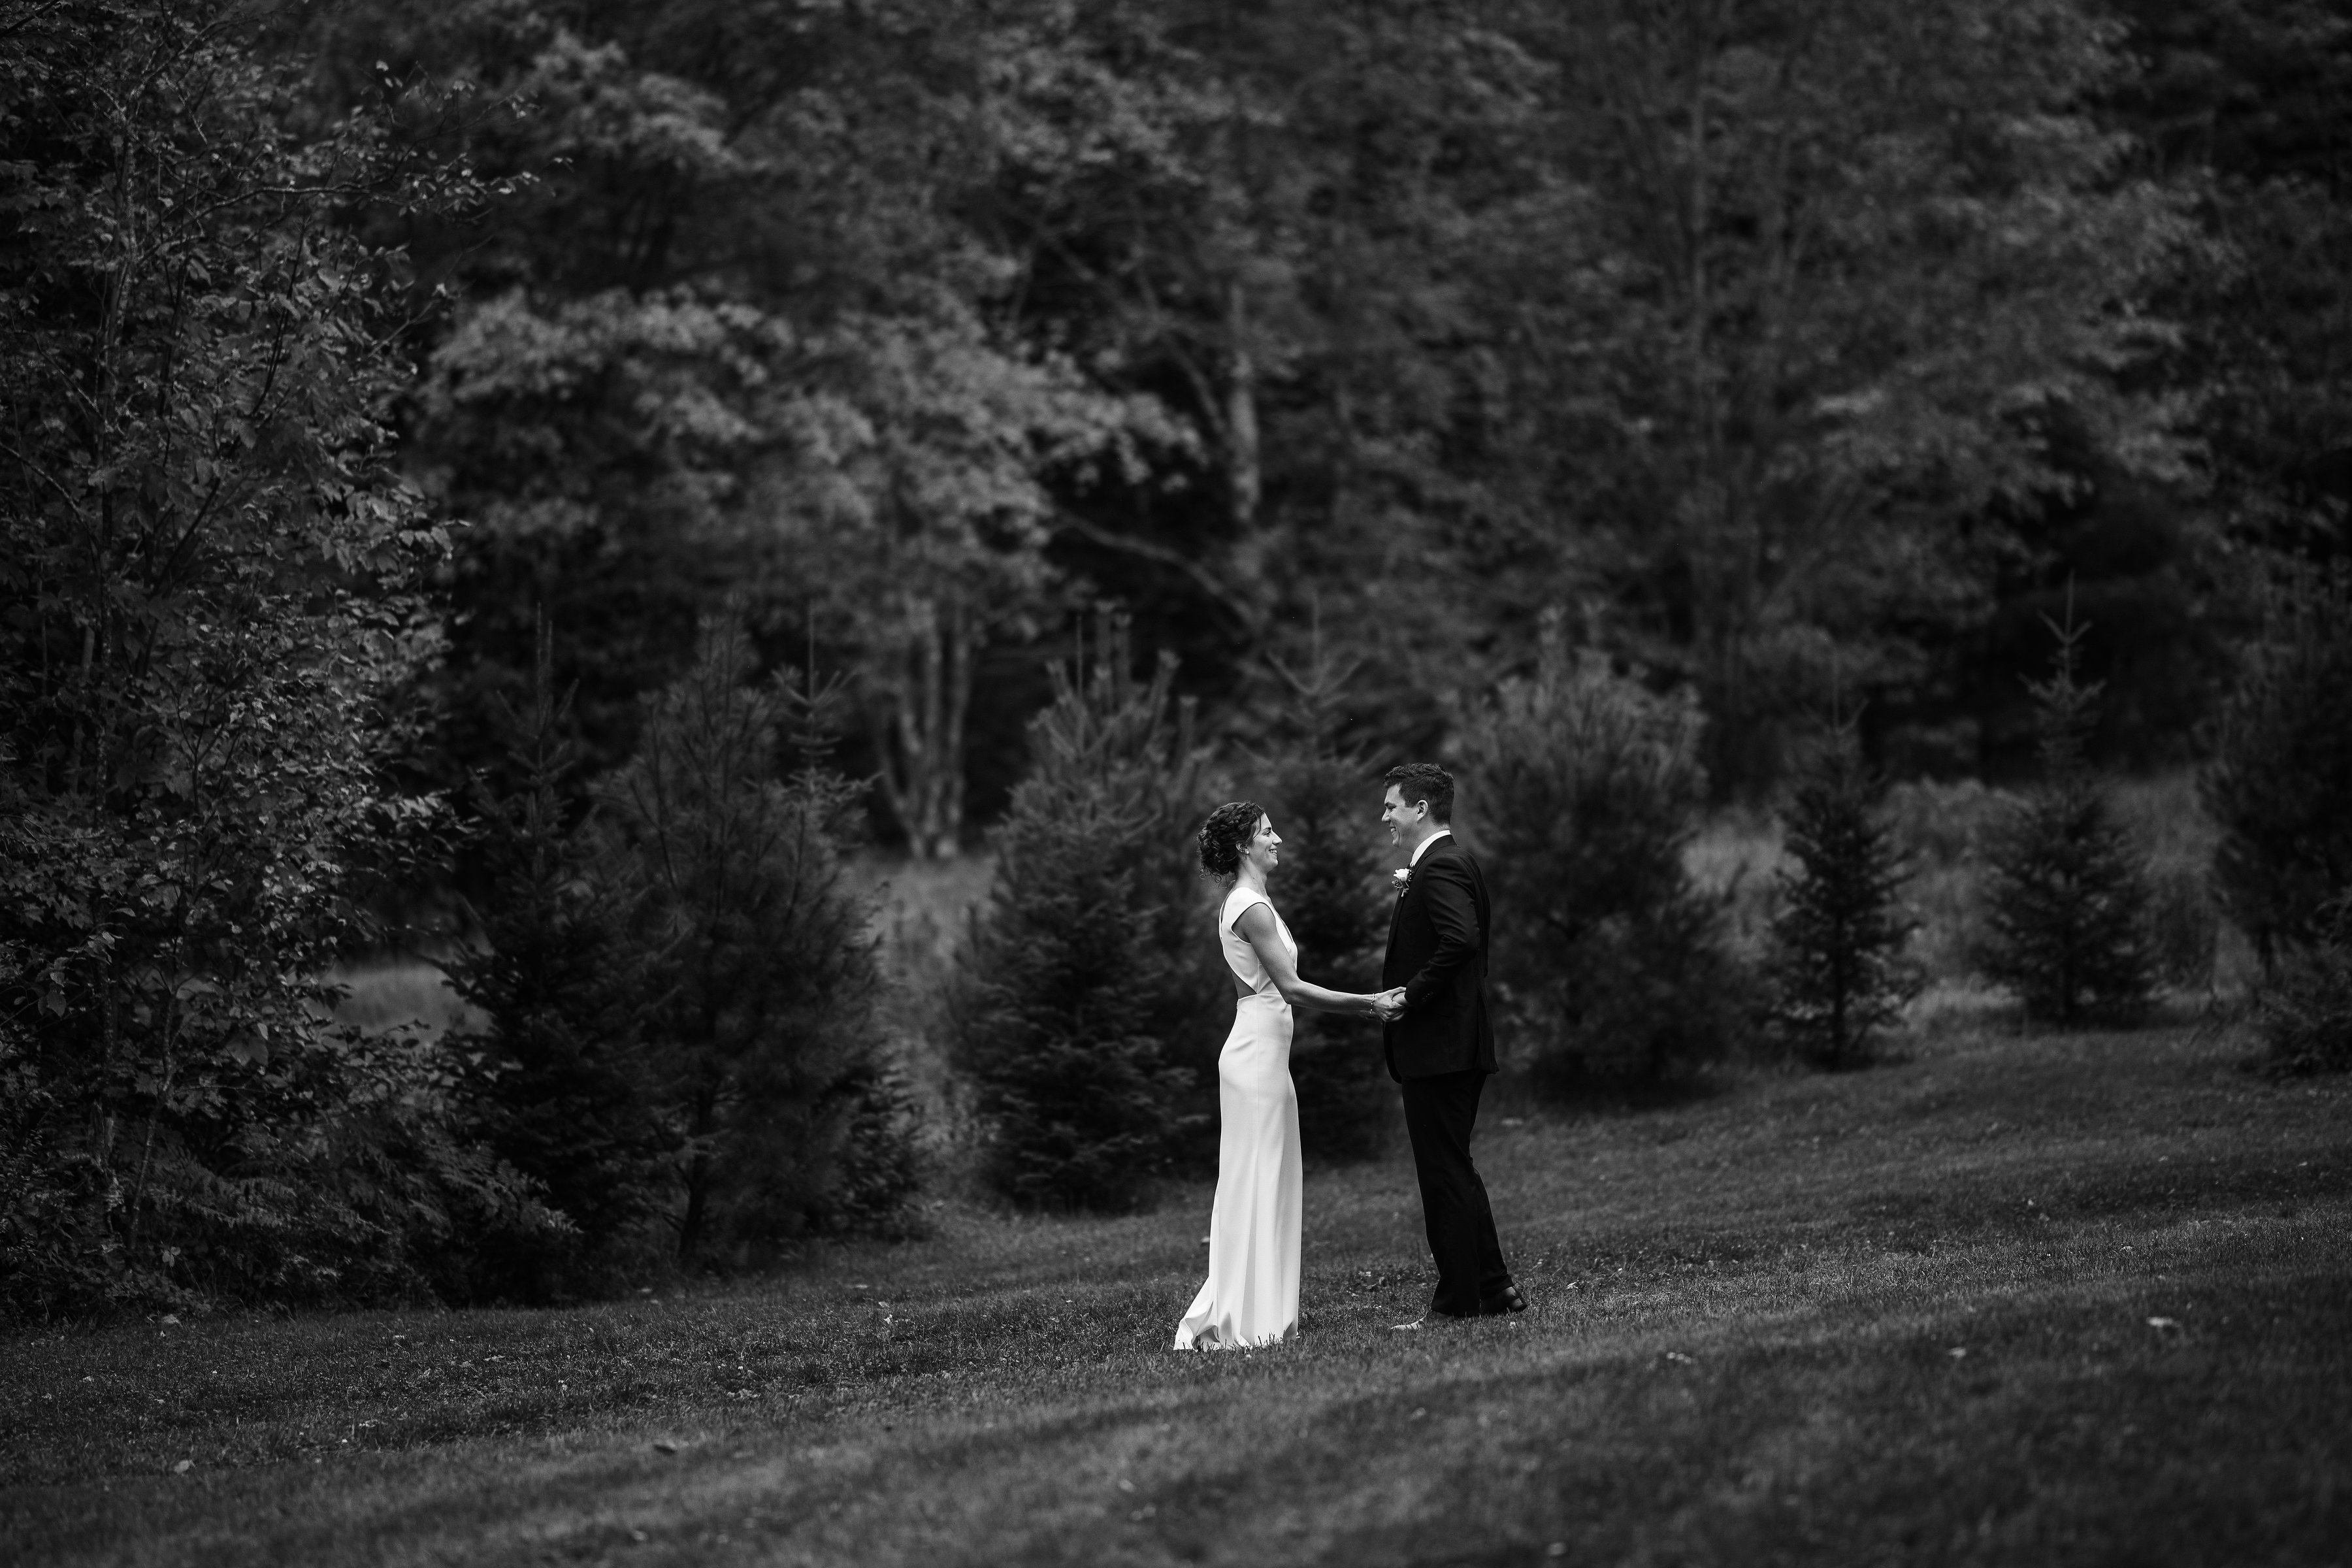 toddwilsonimages.elena.andrew.wedding.0218